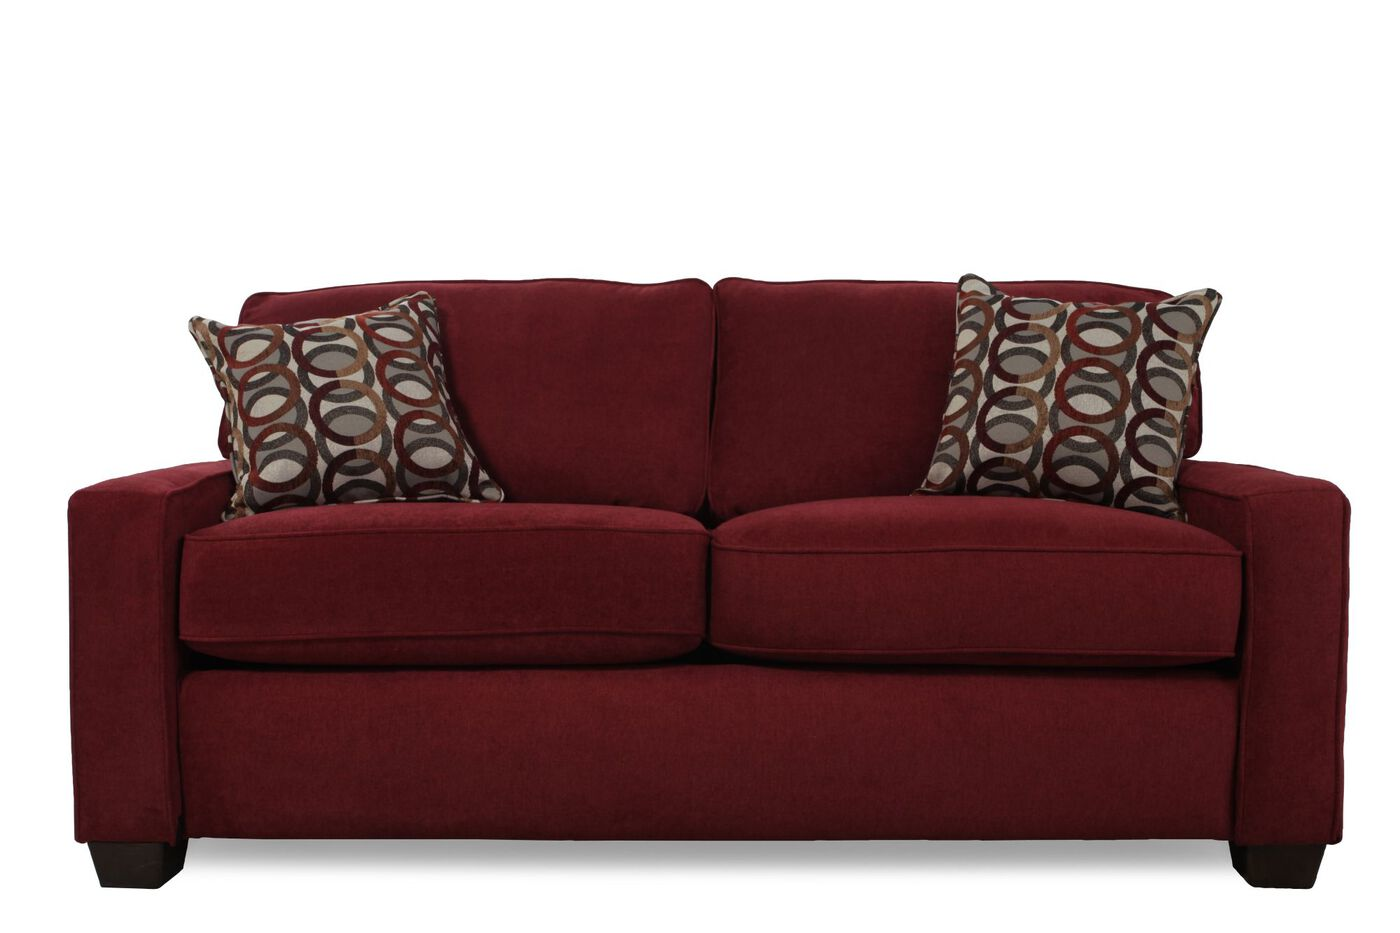 I Rest Casual 82 Quot Sleeper Loveseat In Red Mathis